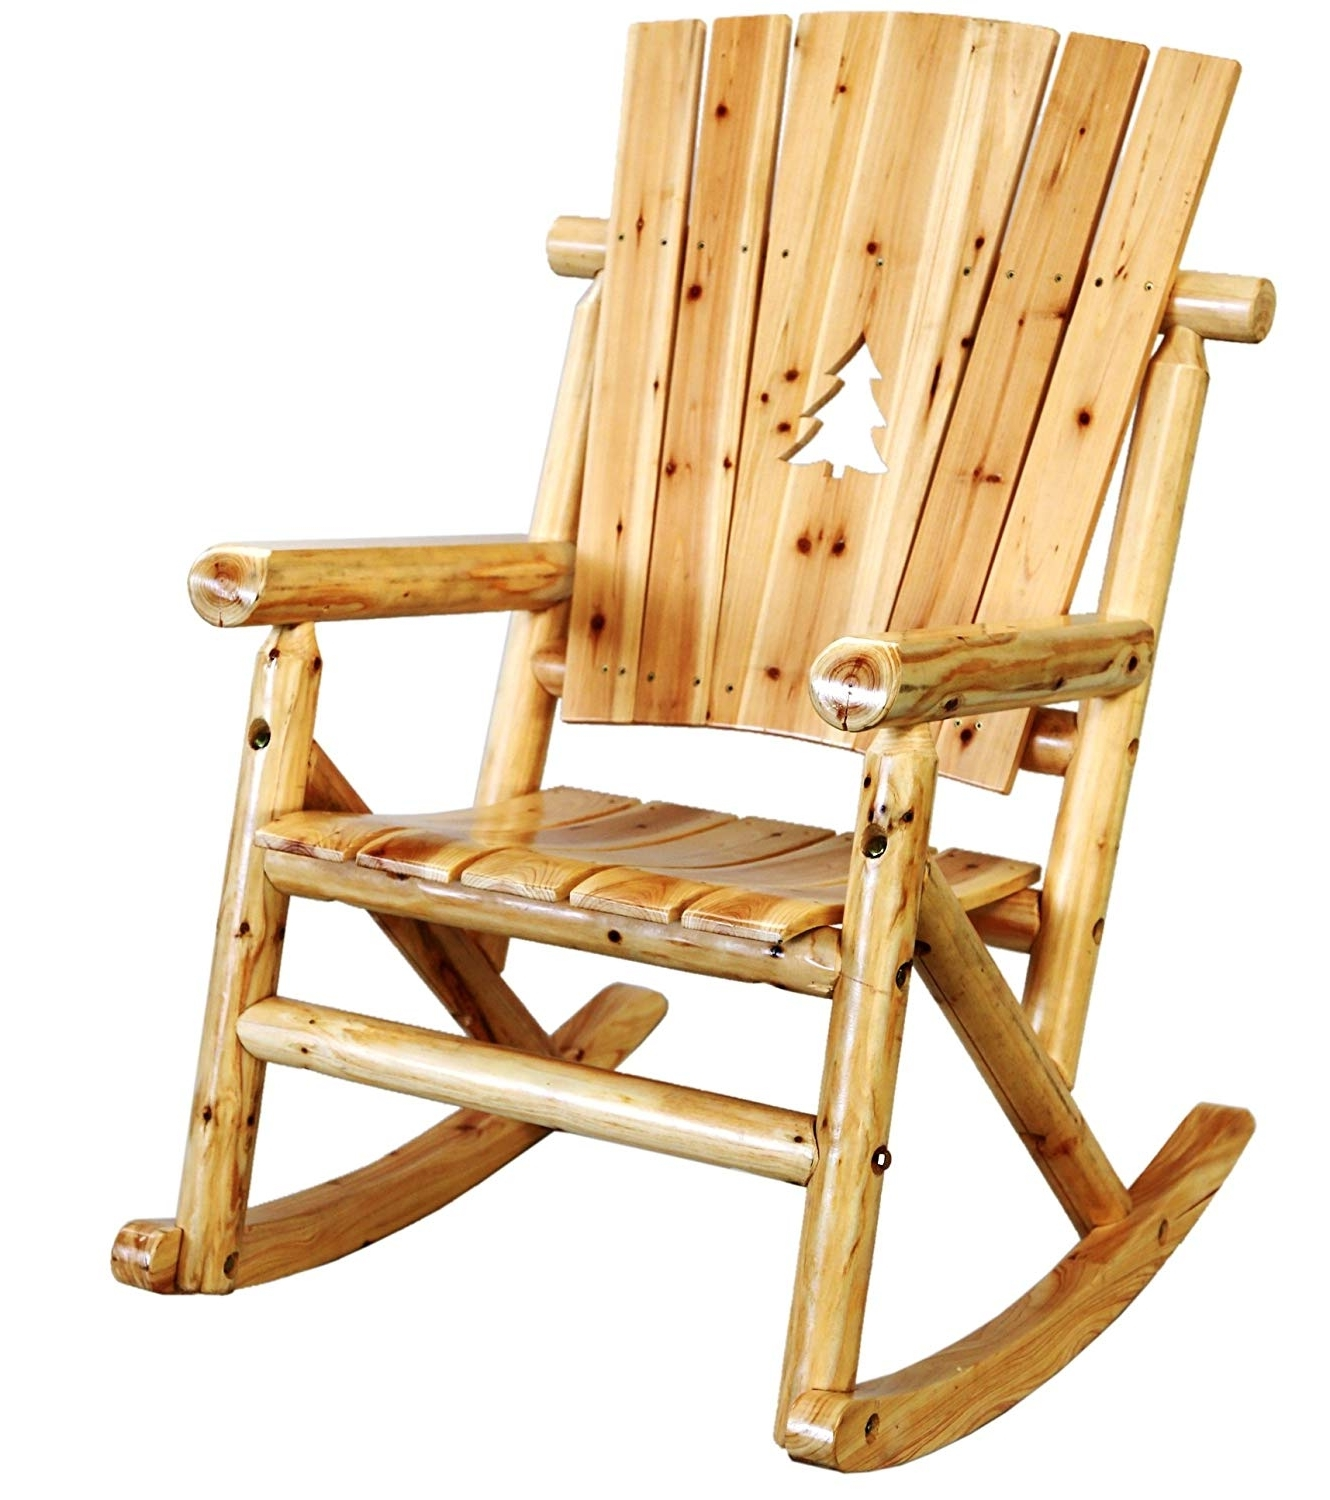 Char Log Patio Rocking Chairs With Star Pertaining To Fashionable Amazon: Leigh Country Tx 95100 Aspen Single Rocker: Garden & Outdoor (View 9 of 15)